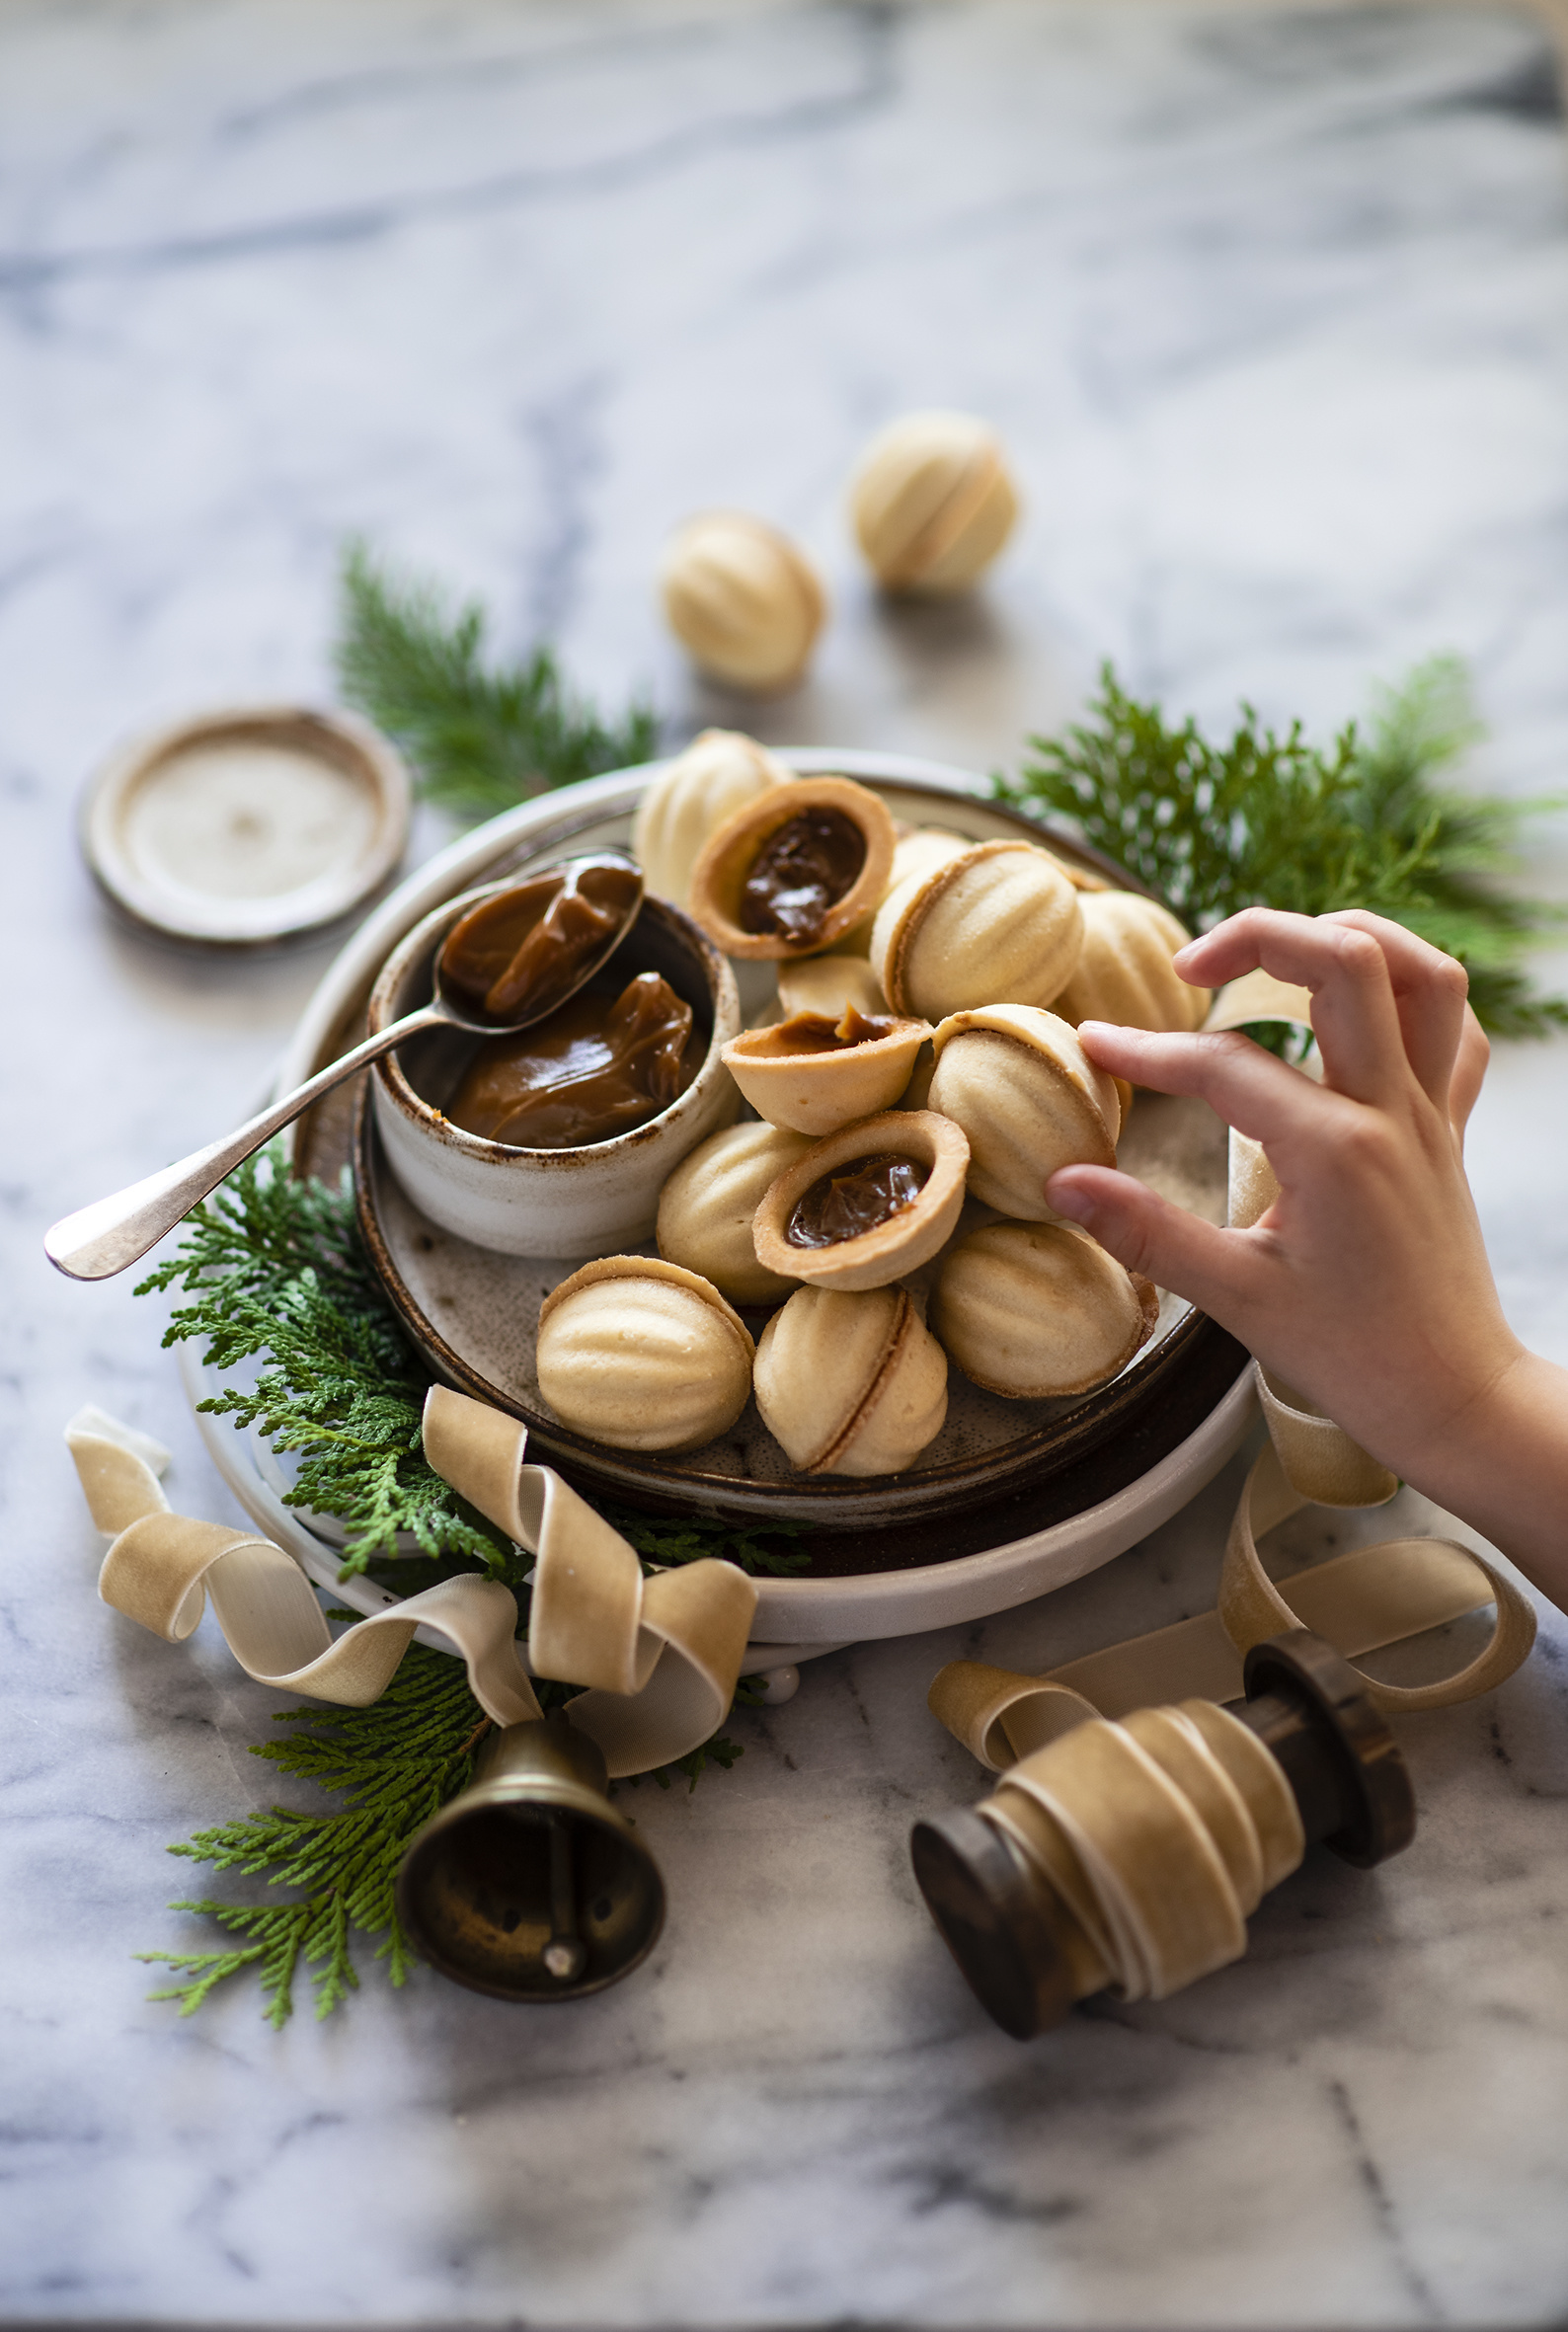 Desktop Wallpapers boiled condensed milk Food Fingers Nuts Pastry Sweets  for Mobile phone baking confectionery